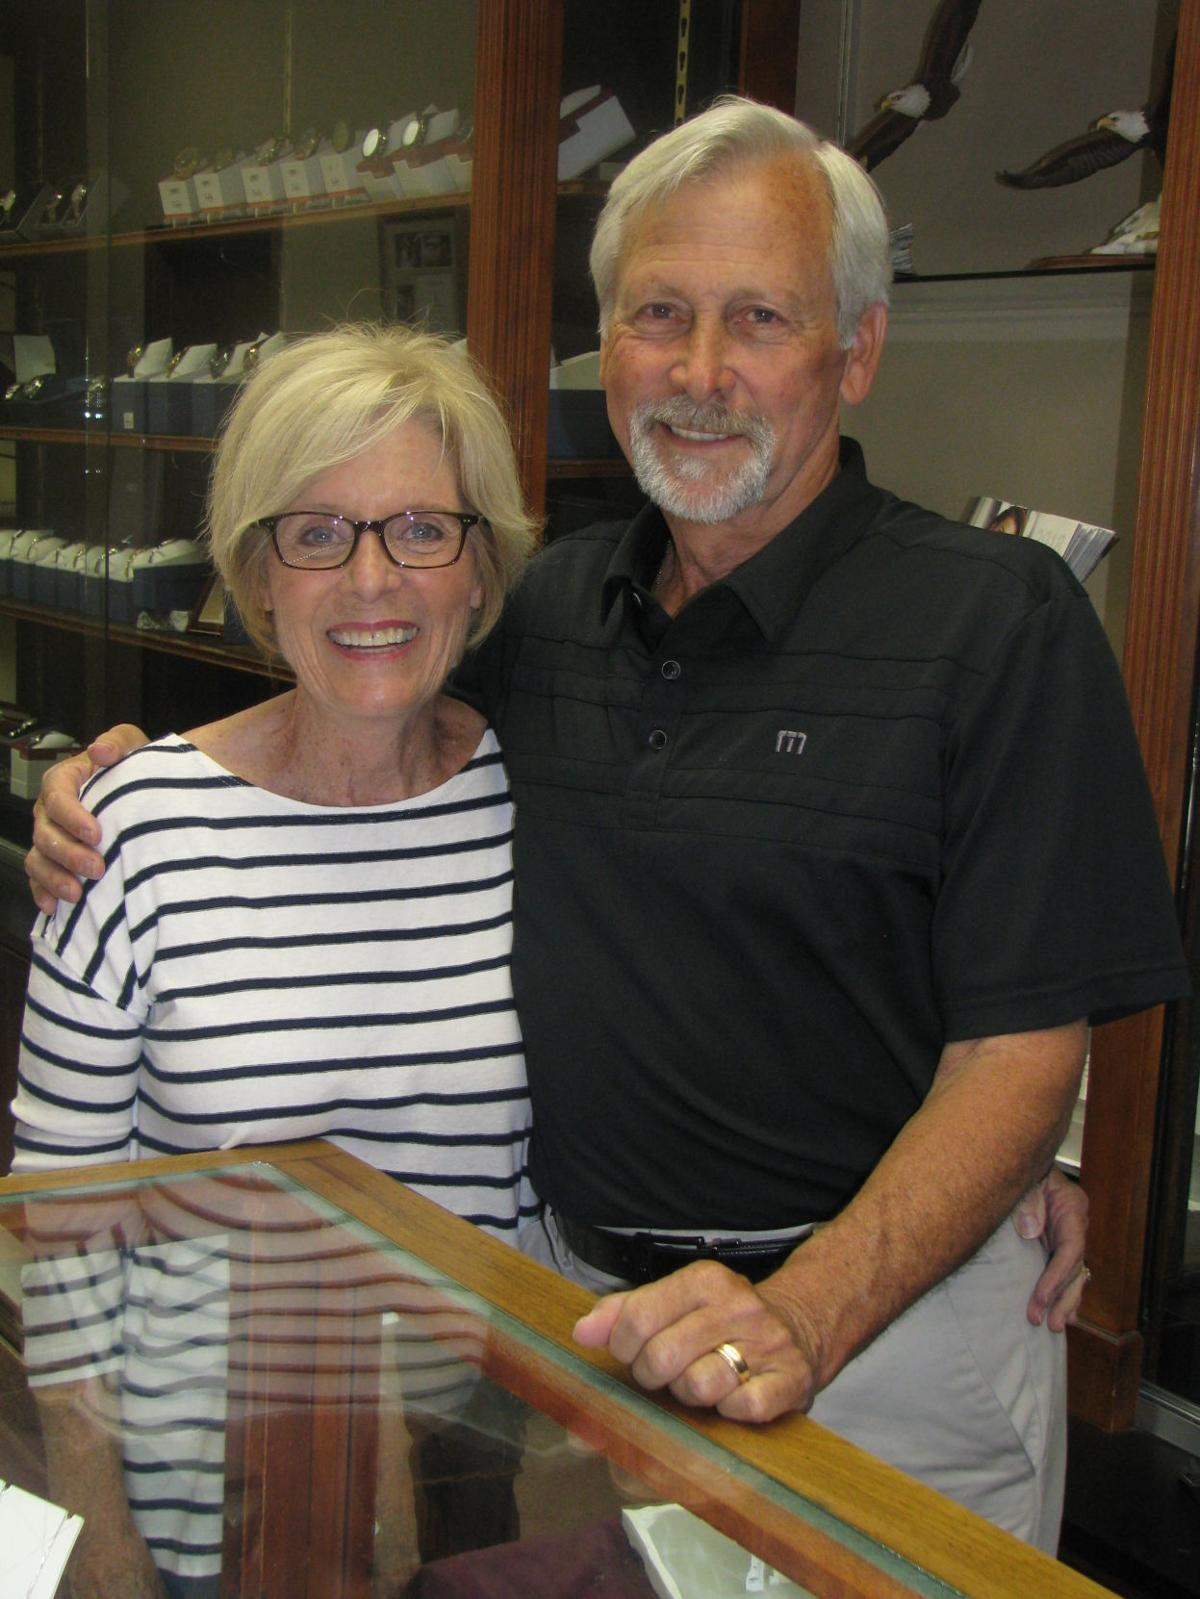 hawthorne jewelry 140 years old gets special visit from